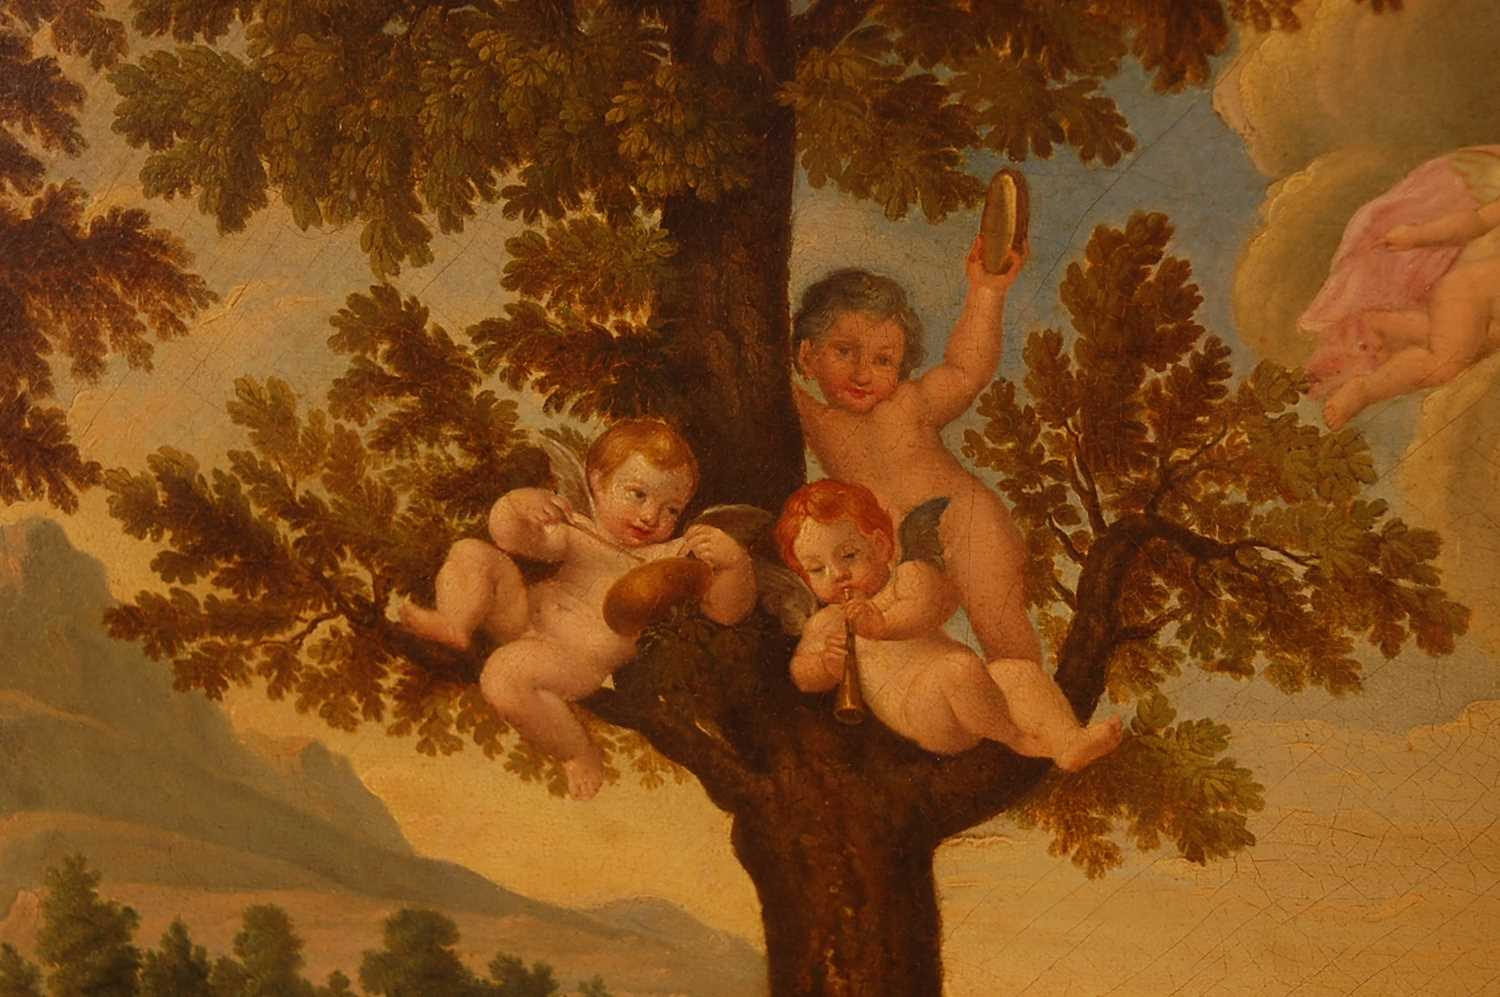 Guandallini Cententa (Italian 19th century) - Rape of Proserpine, oil on canvas, signed and dated - Image 3 of 9